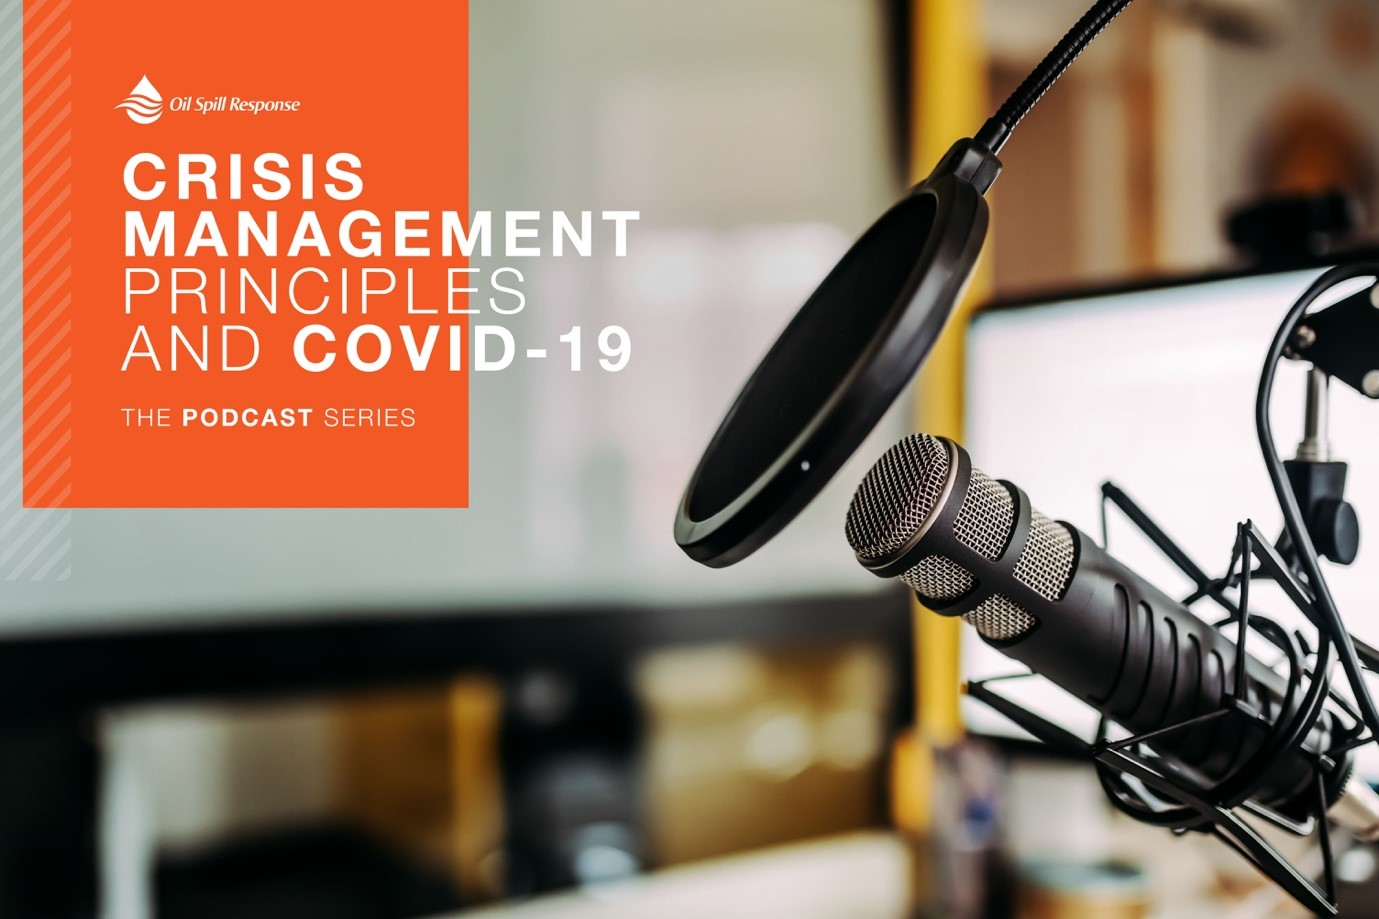 Podcast: Crisis Management Principles and the COVID-19 Crisis